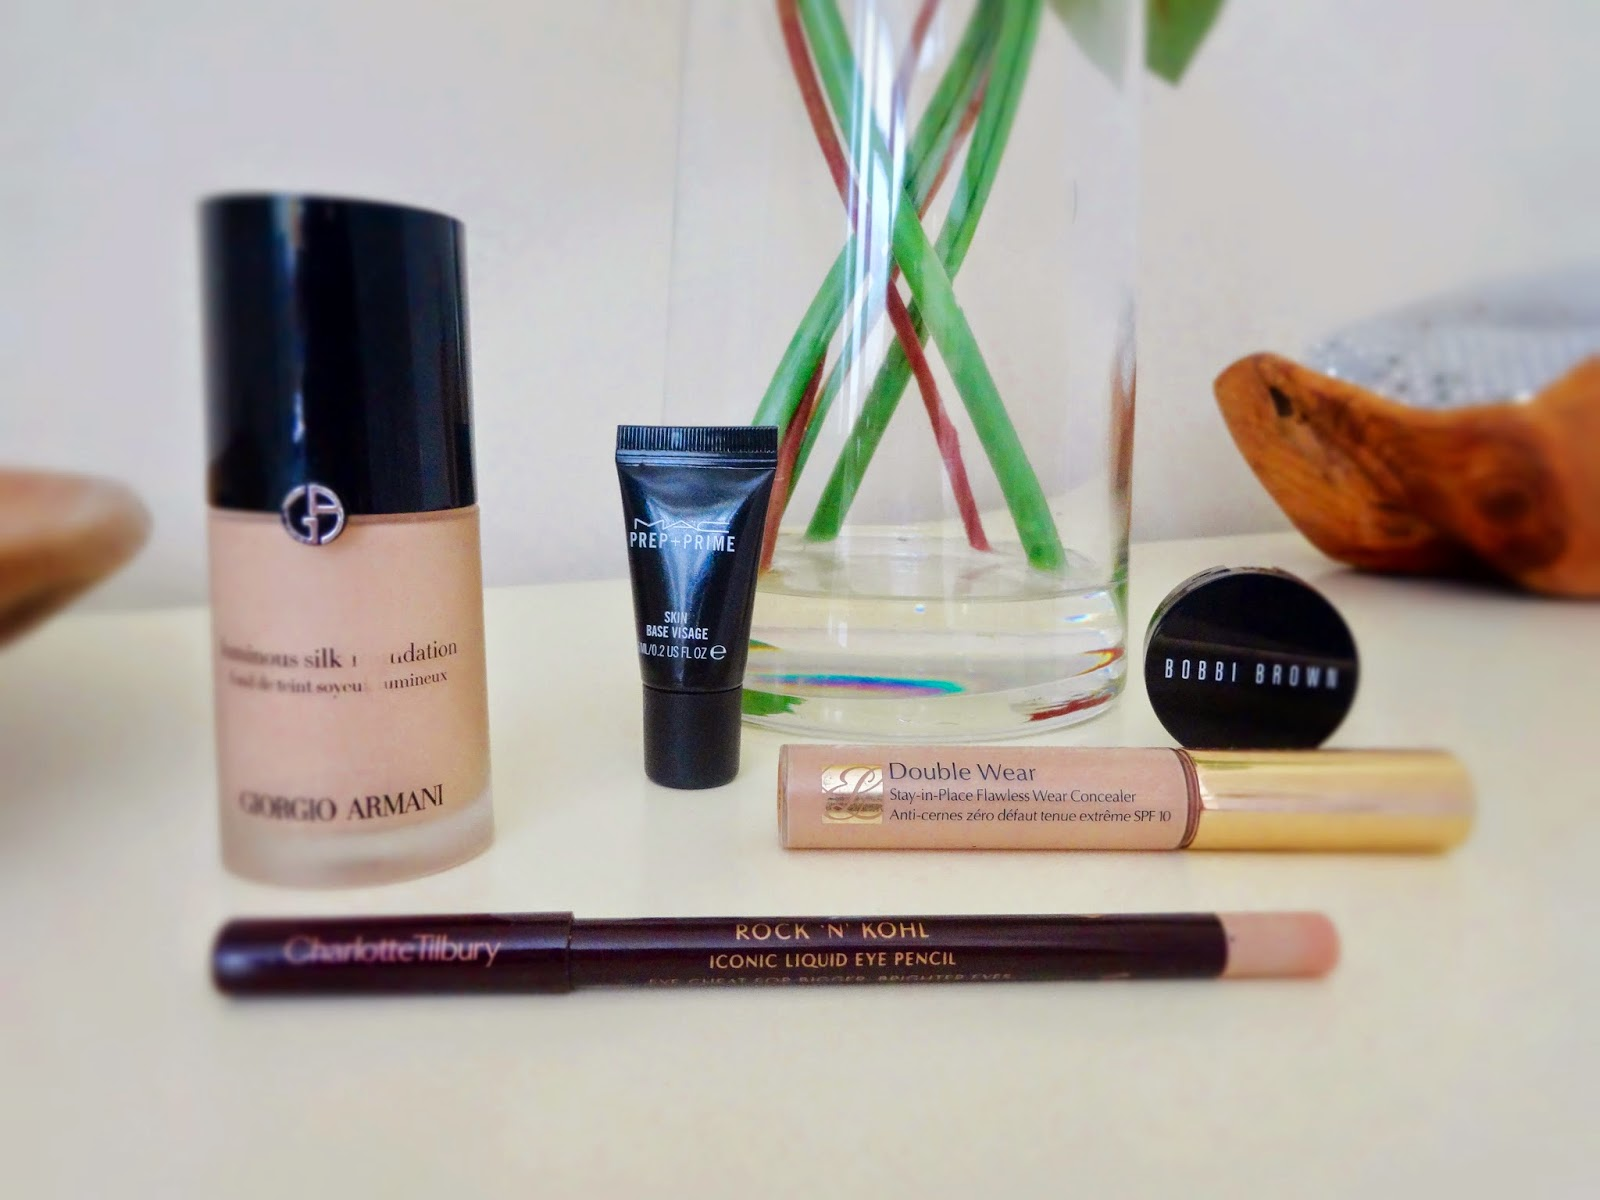 Giorgio Armani Luminous Silk Foundation, Charlotte Tilbury Rock 'N' Kohl Eye Cheat, Mac Prep + Prime Skin Base Visage, Bobbi Brown Corrector, Estee Lauder Double Wear Stay in Place Flawless Wear Concealer